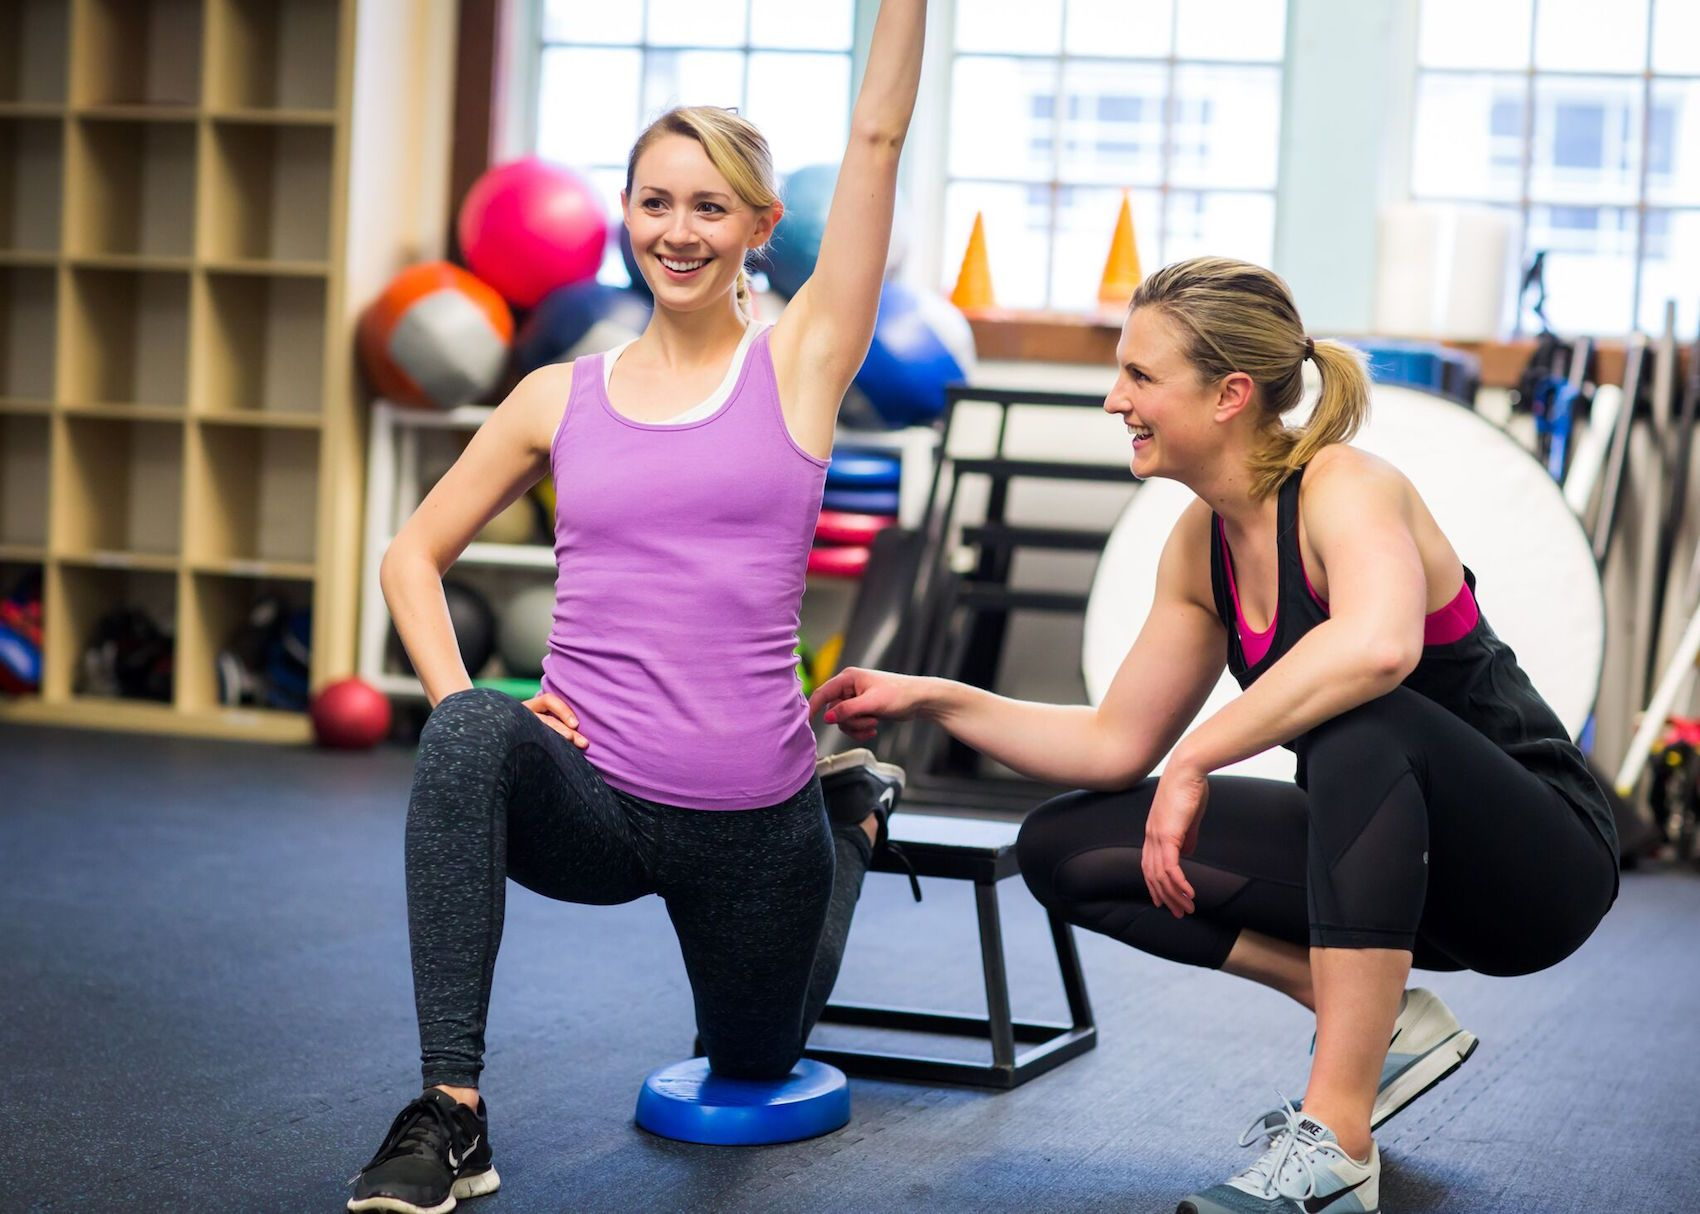 Top 10 Fitness Trainers In San Francisco Fitness Trainer Fitness Fit Women